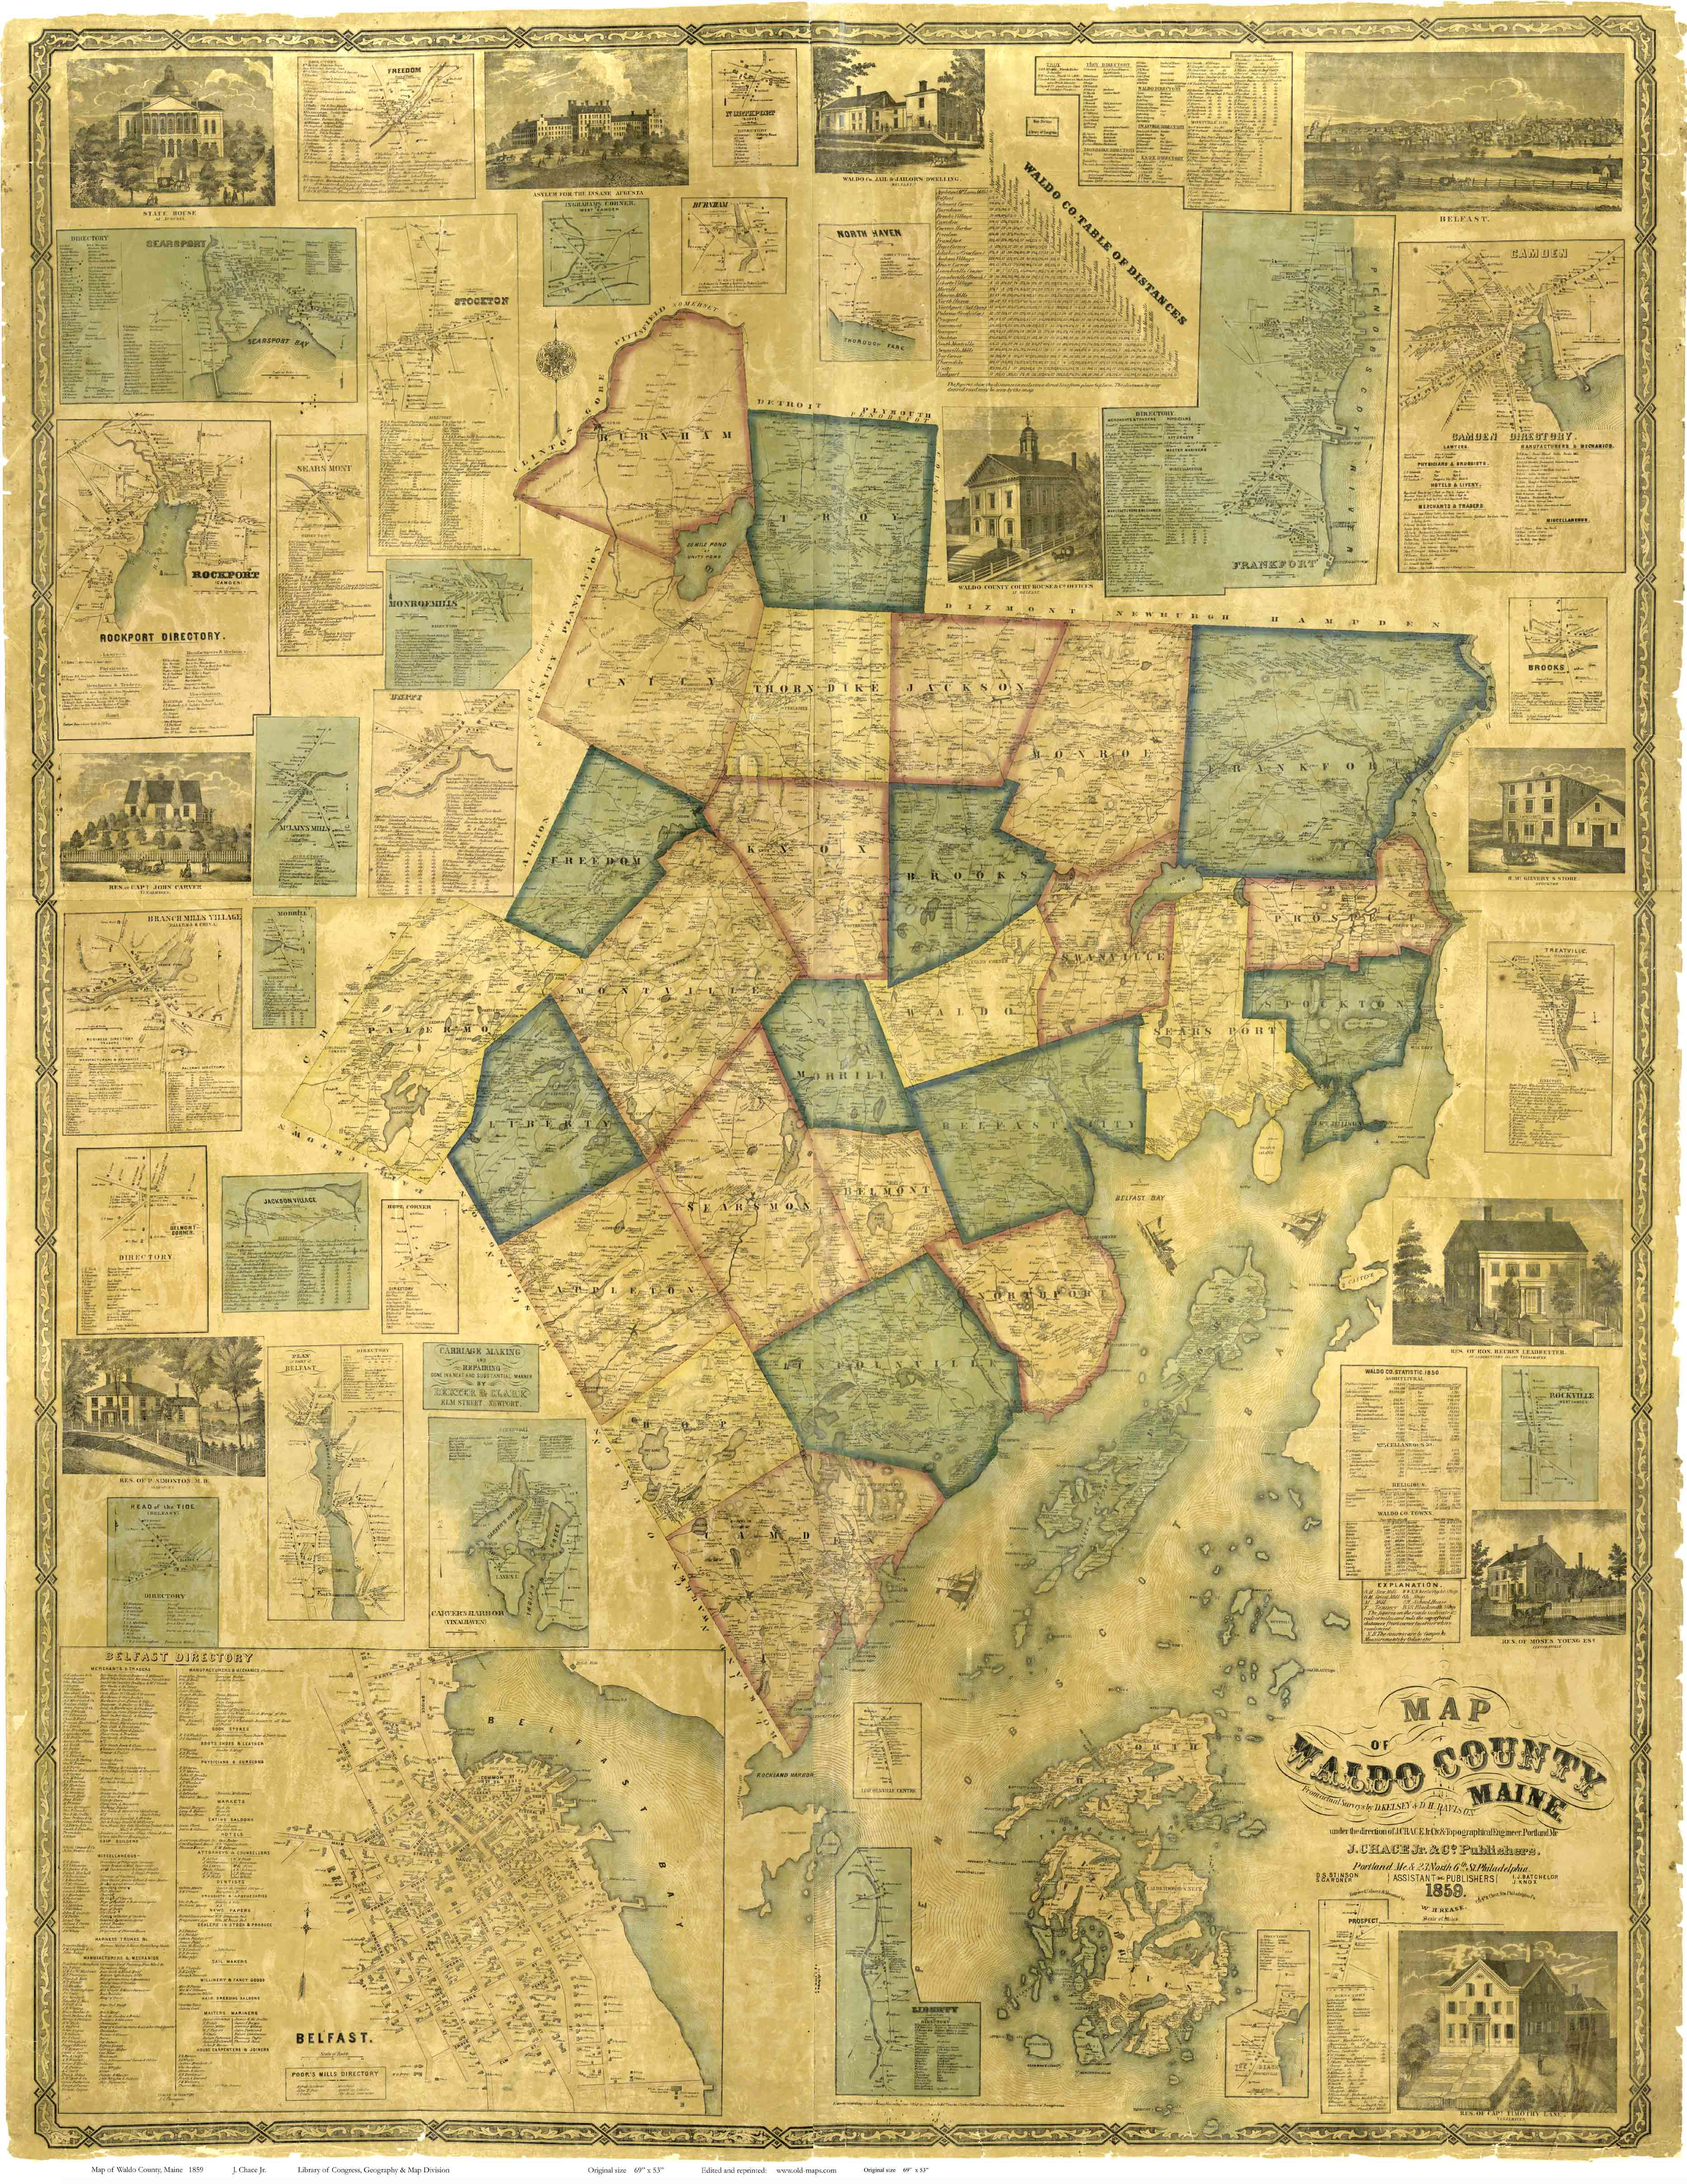 Waldo County Maine 1859 Maps